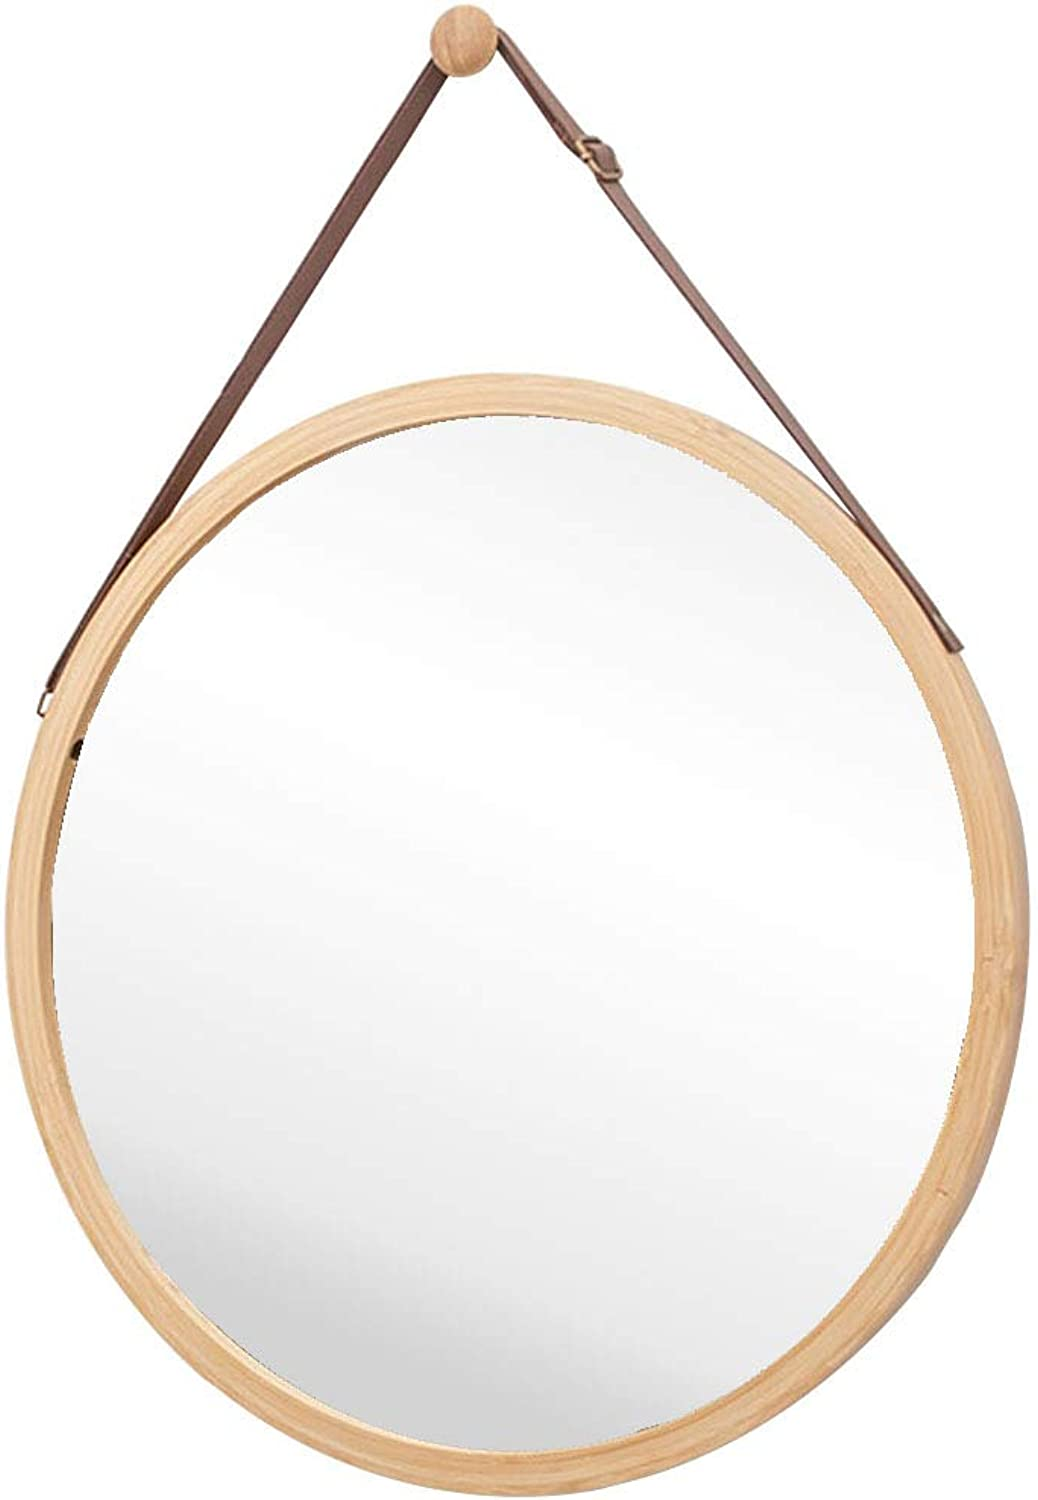 15-17.7 Inch Round Wall-Mounted Mirror with Leather Hanging Strap (Adjustable) Bamboo Frame Mirror for Bathroom Makeup Bedroom Hallway Home Decoration,Natural color